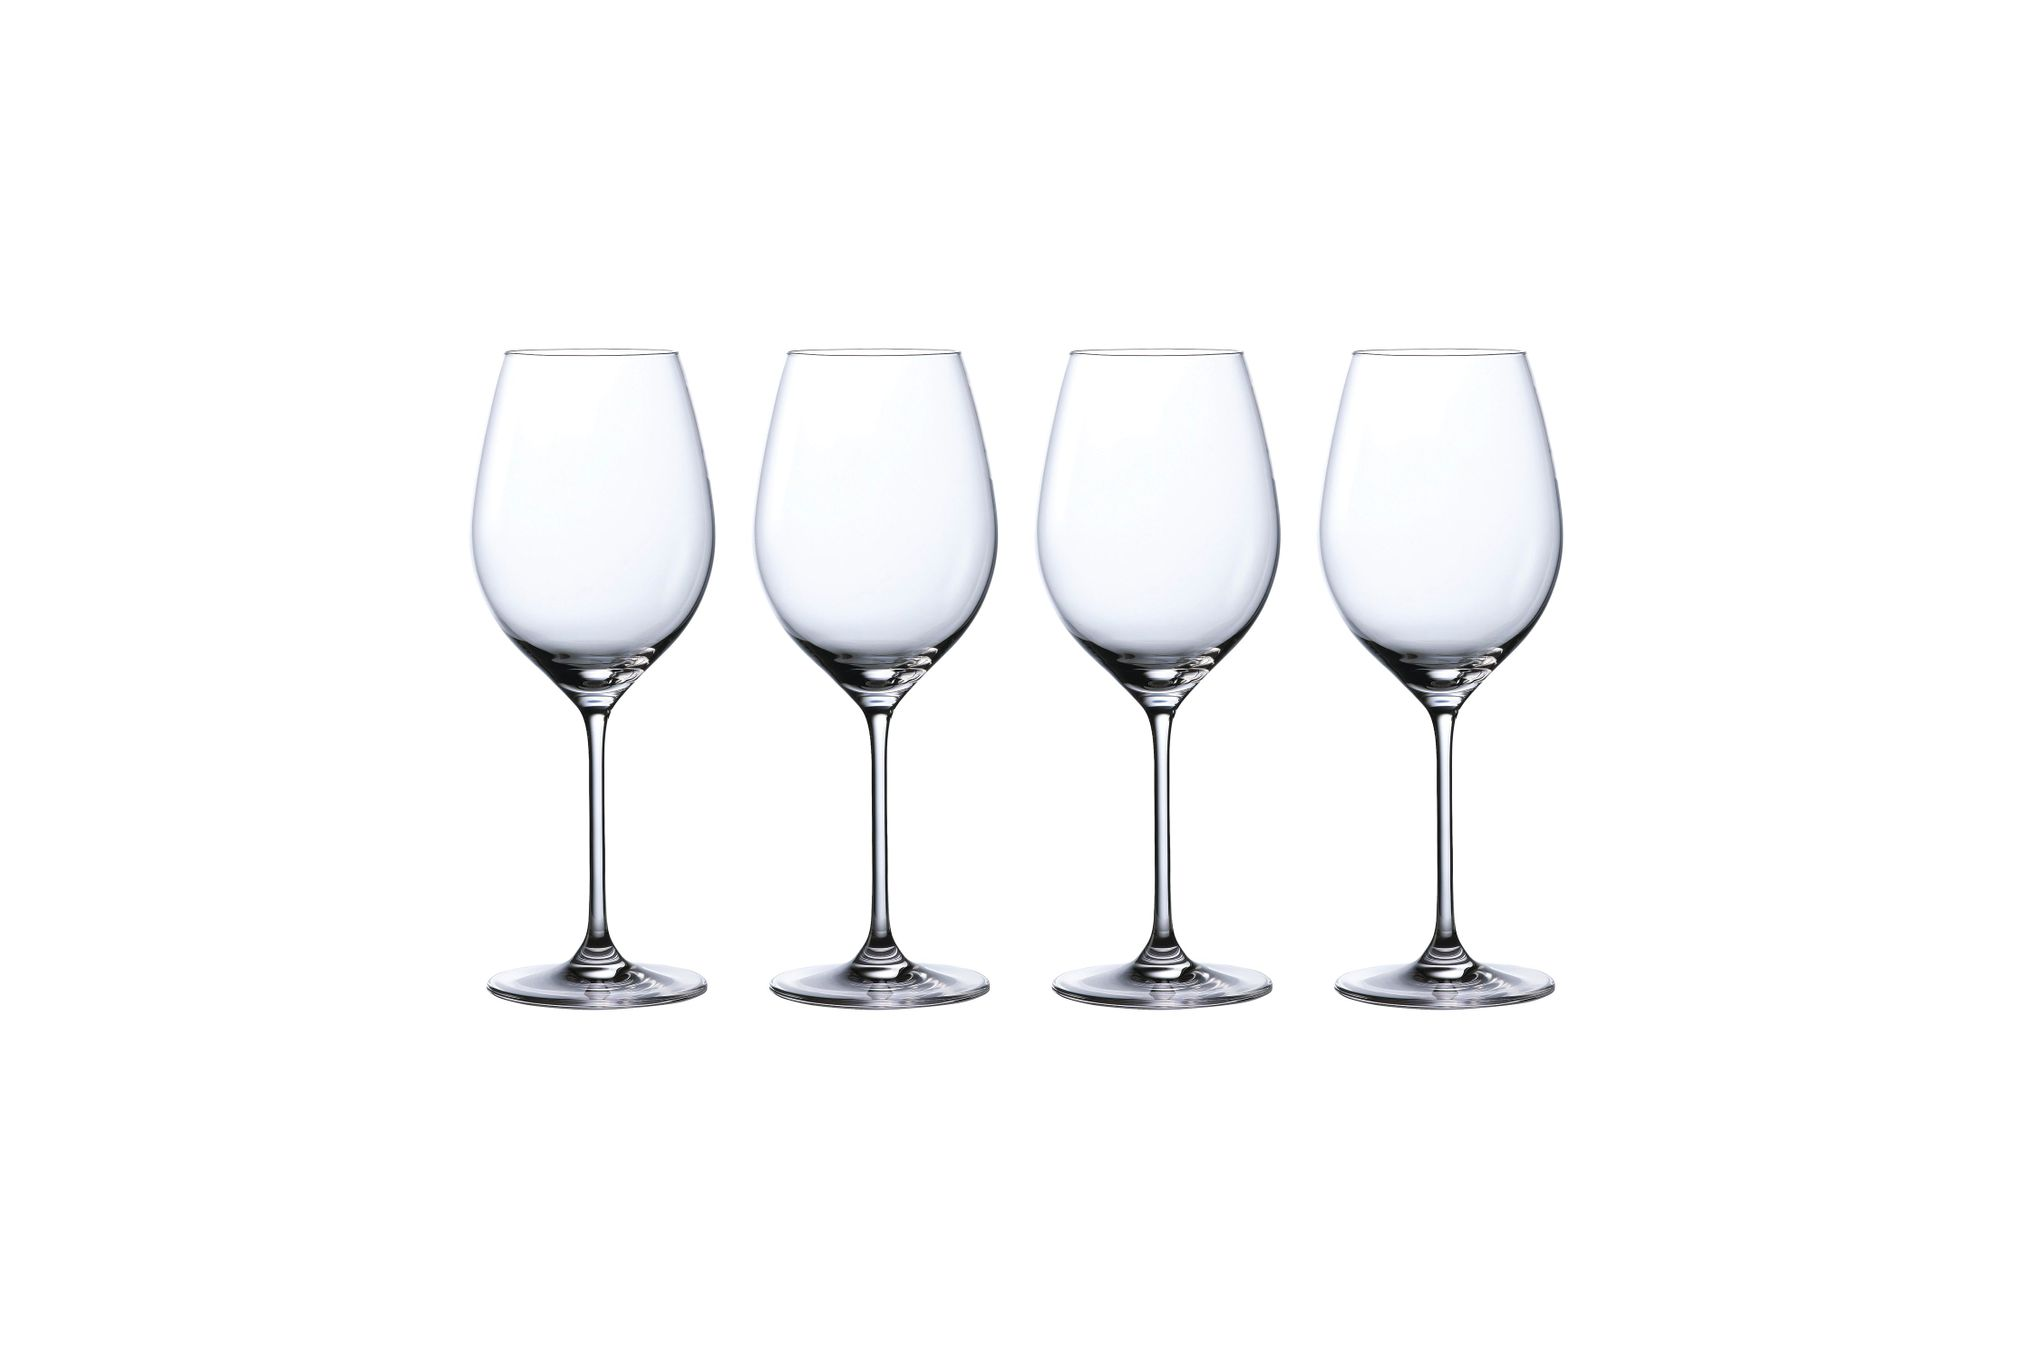 Waterford Marquis Moments Set of 4 Red Wine Glasses 580ml thumb 2